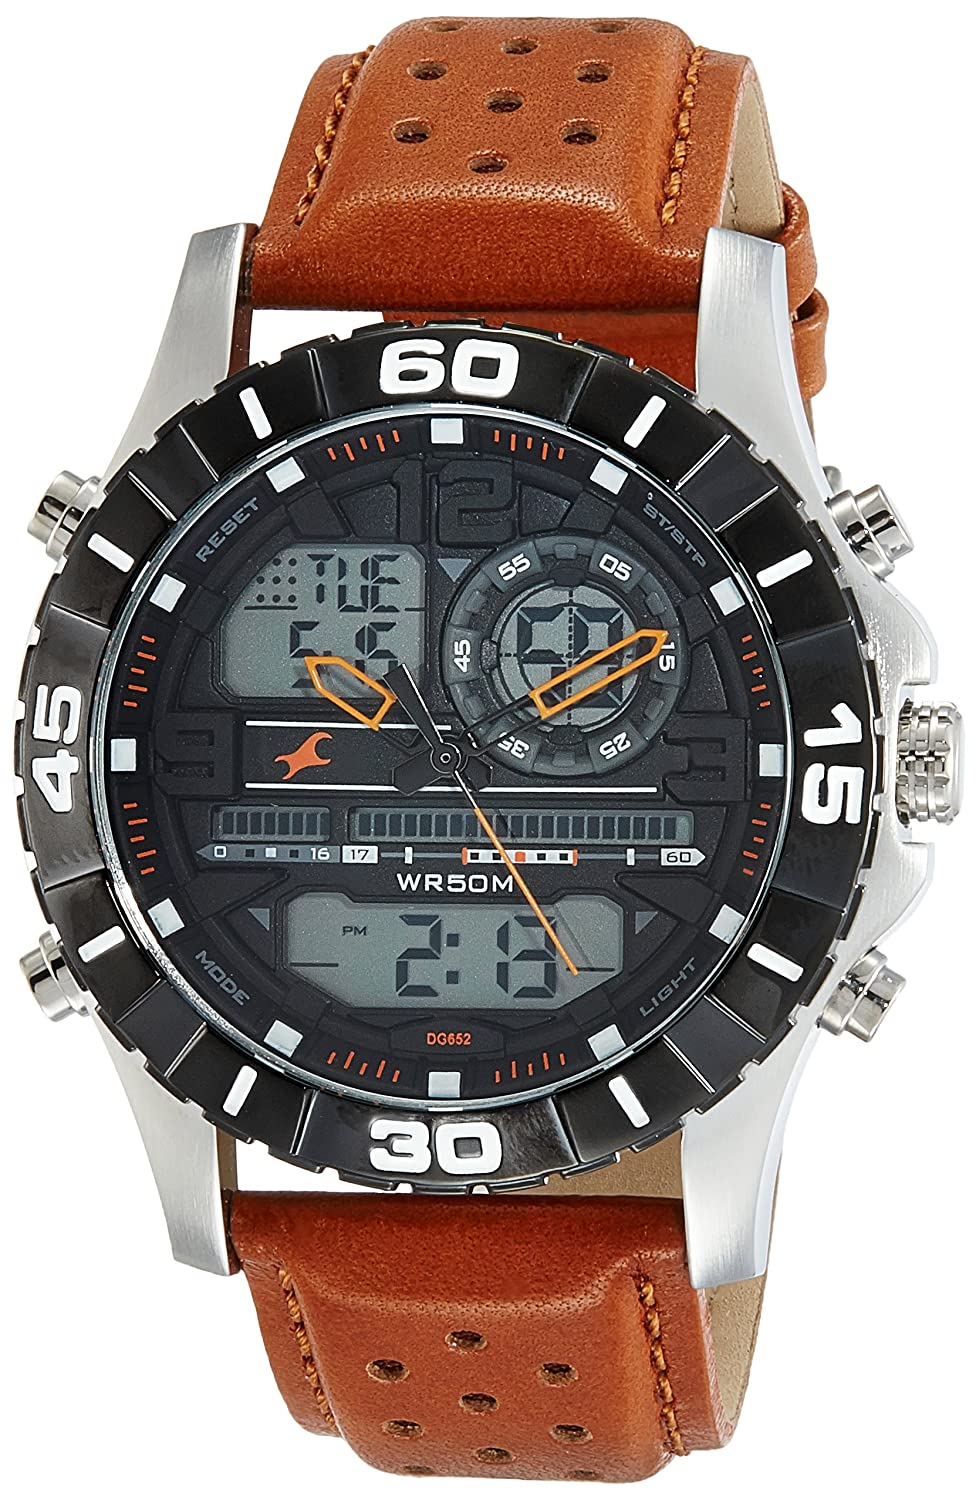 Fastrack best sports watches for men in India